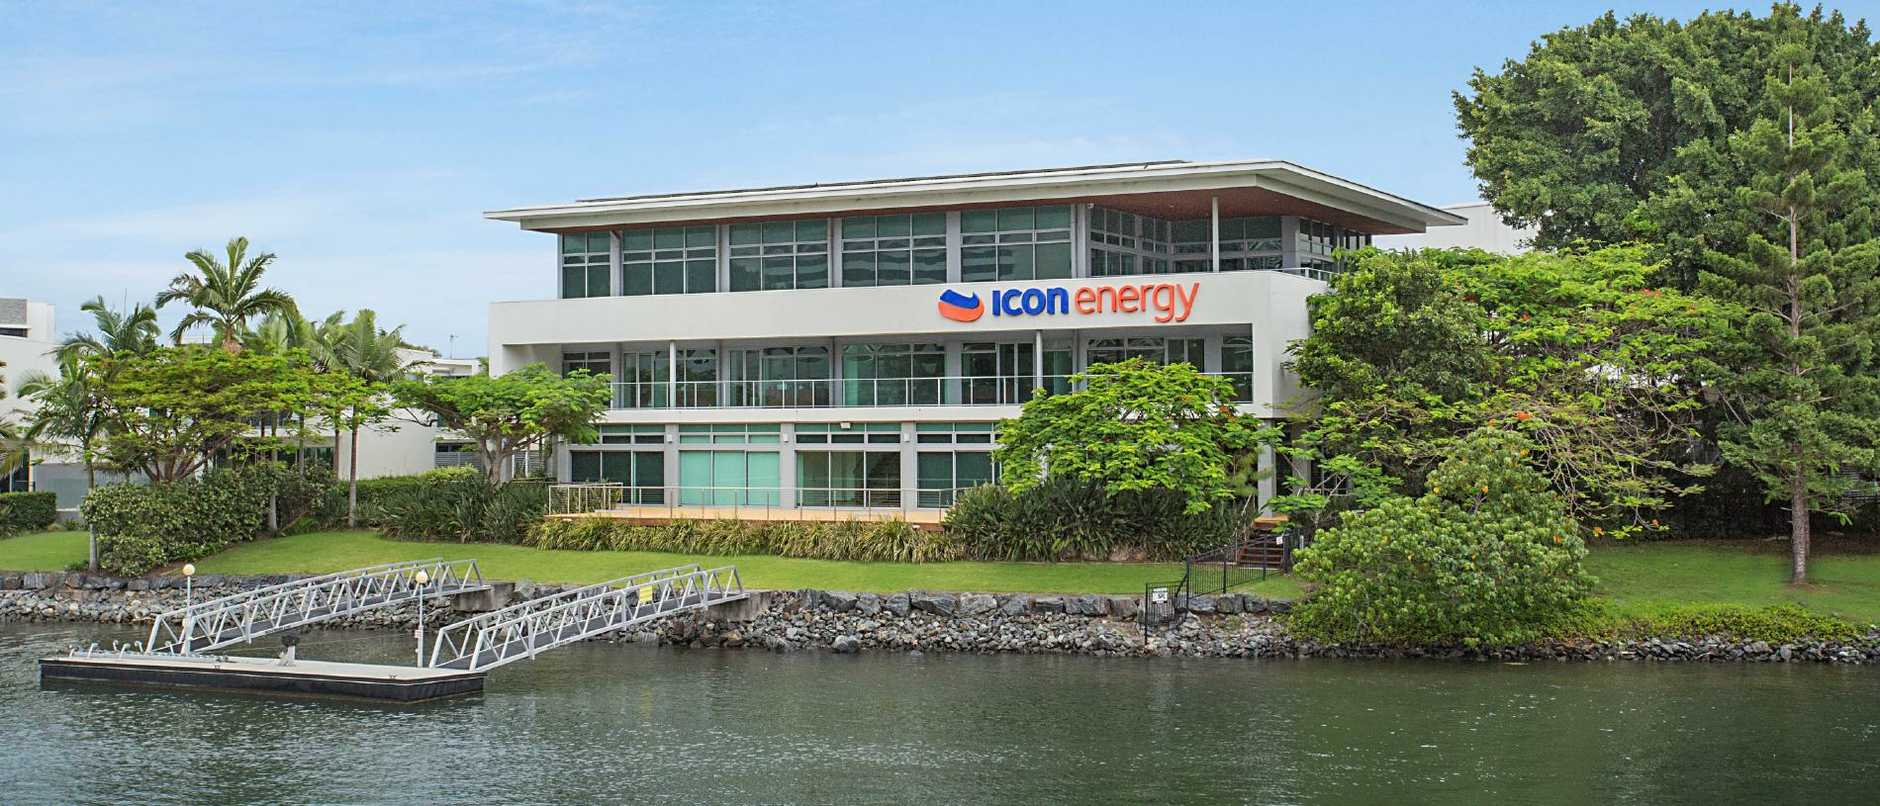 The Icon Energy headquarters at Broadbeach Waters. Photo: Supplied